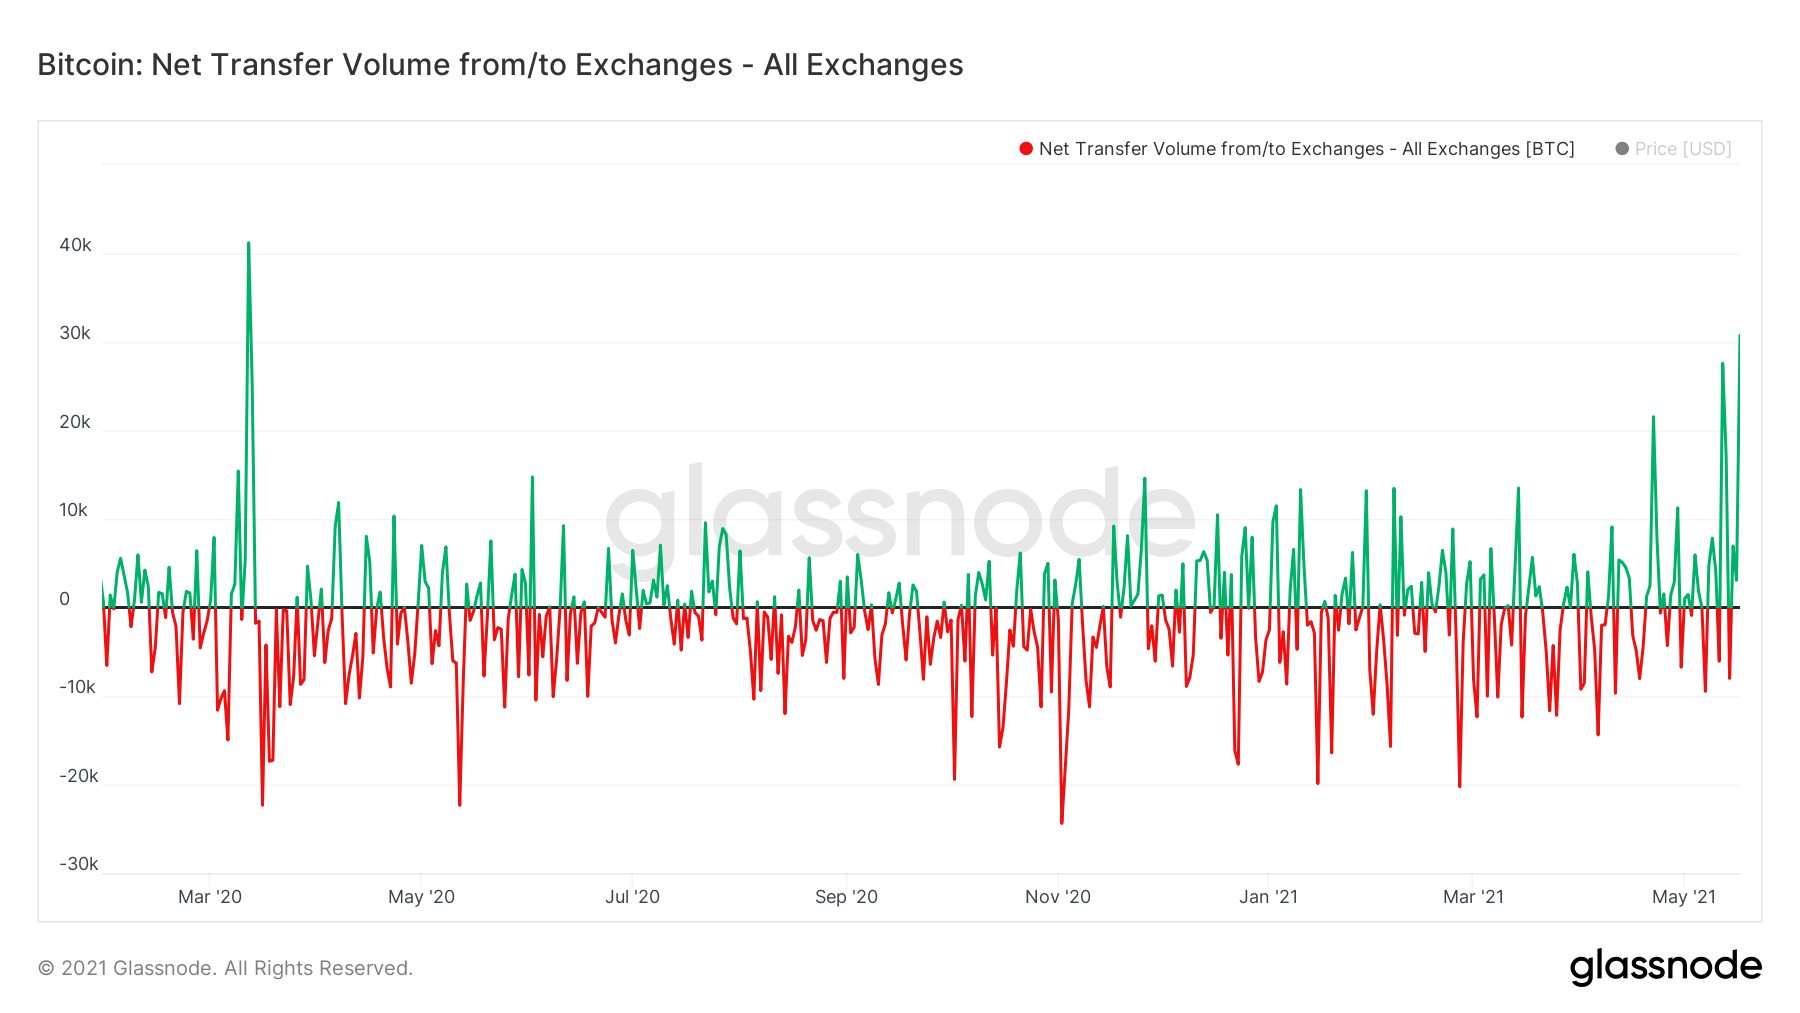 Crypto Exchanges See Fastest Bitcoin Inflows Since 'Black Thursday' in March 2020